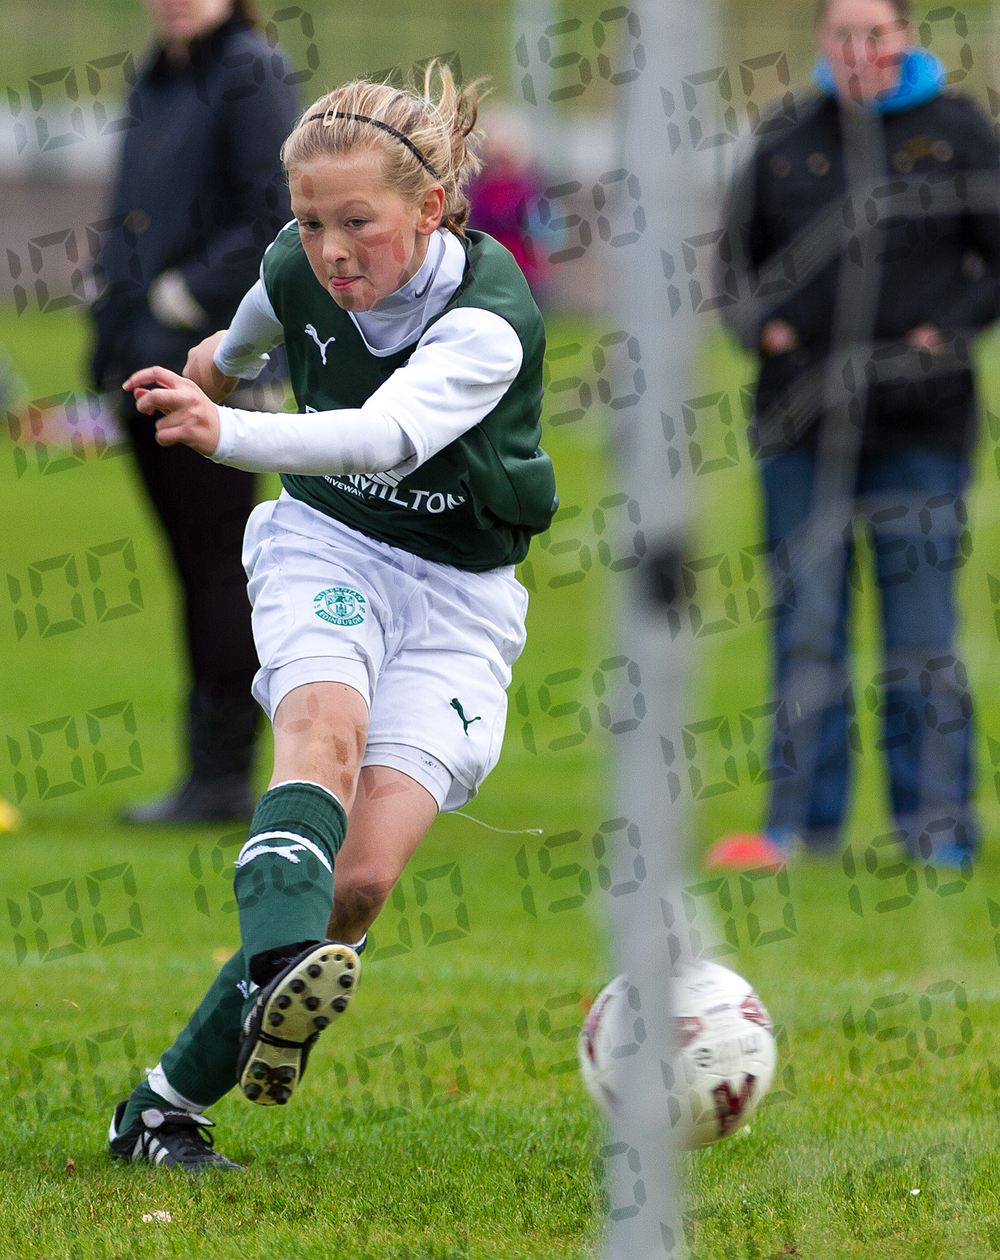 Hibs_v_Hearts_girls_13s-24.jpg